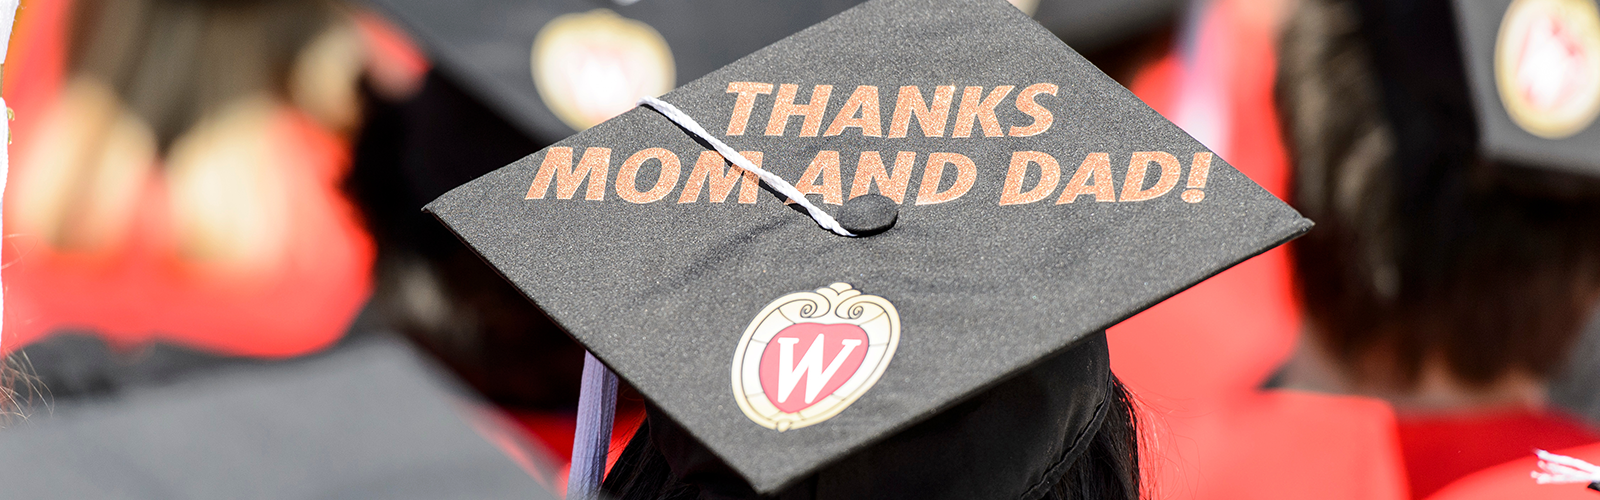 Graduates display personal messages on their graduation caps during UW-Madison's spring commencement ceremony at Camp Randall Stadium.